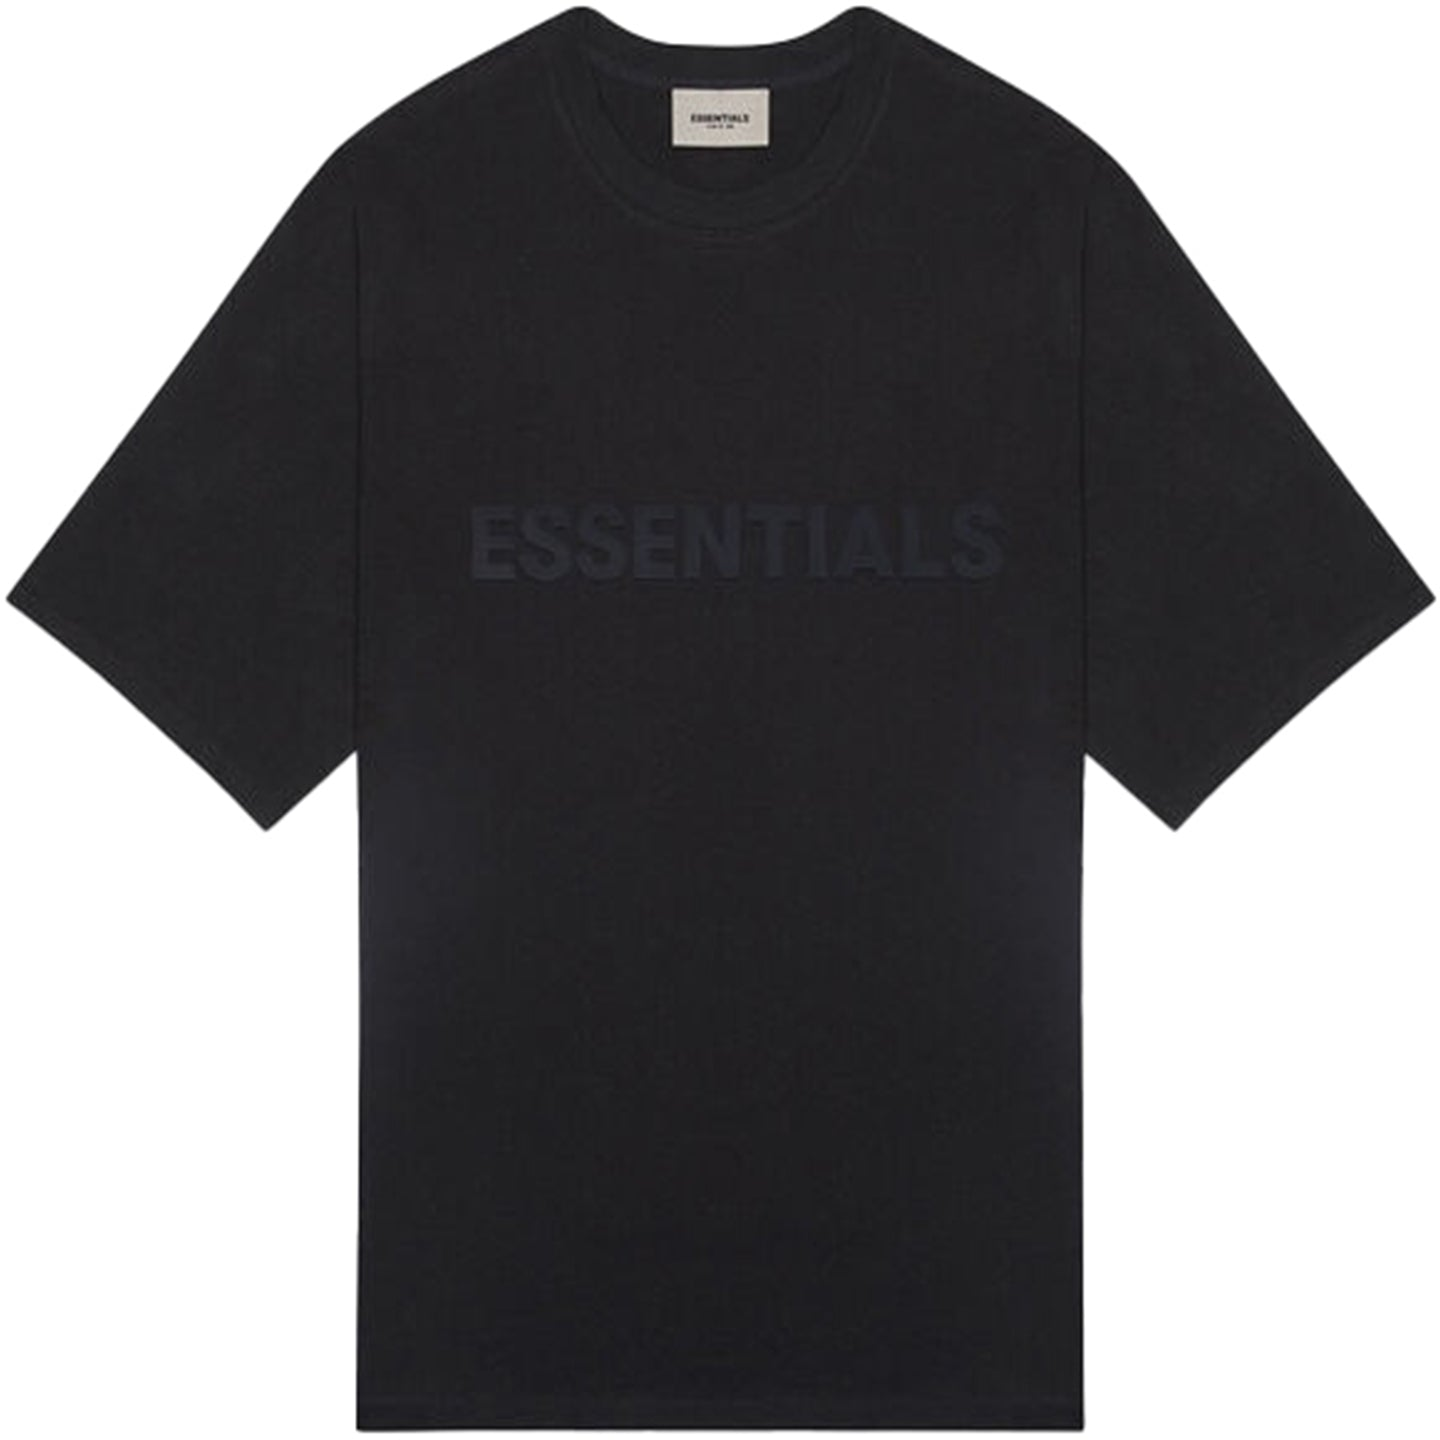 FEAR OF GOD ESSENTIALS BLACK LOGO TEE